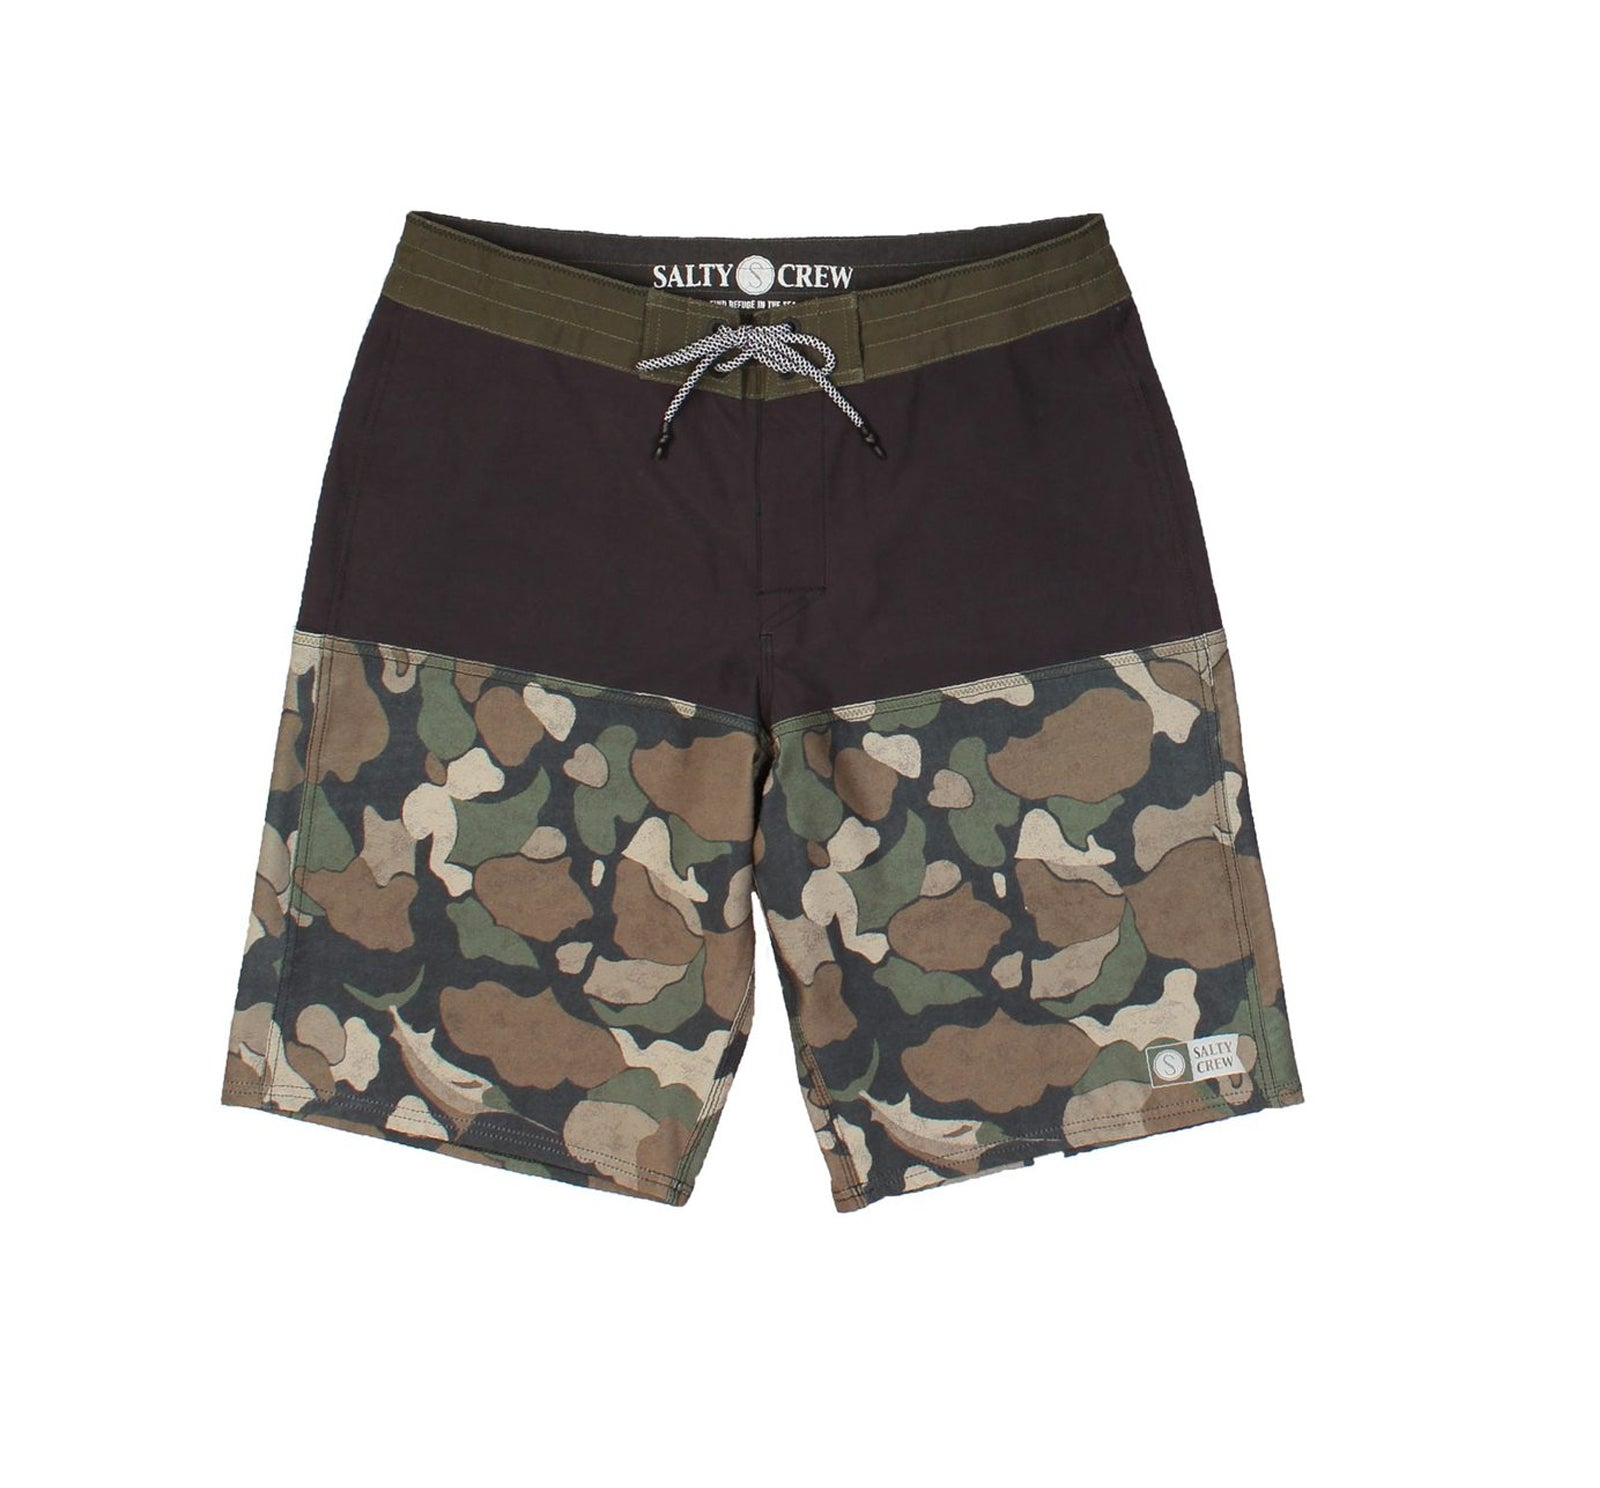 Salty Crew Halyard Men's Boardshorts